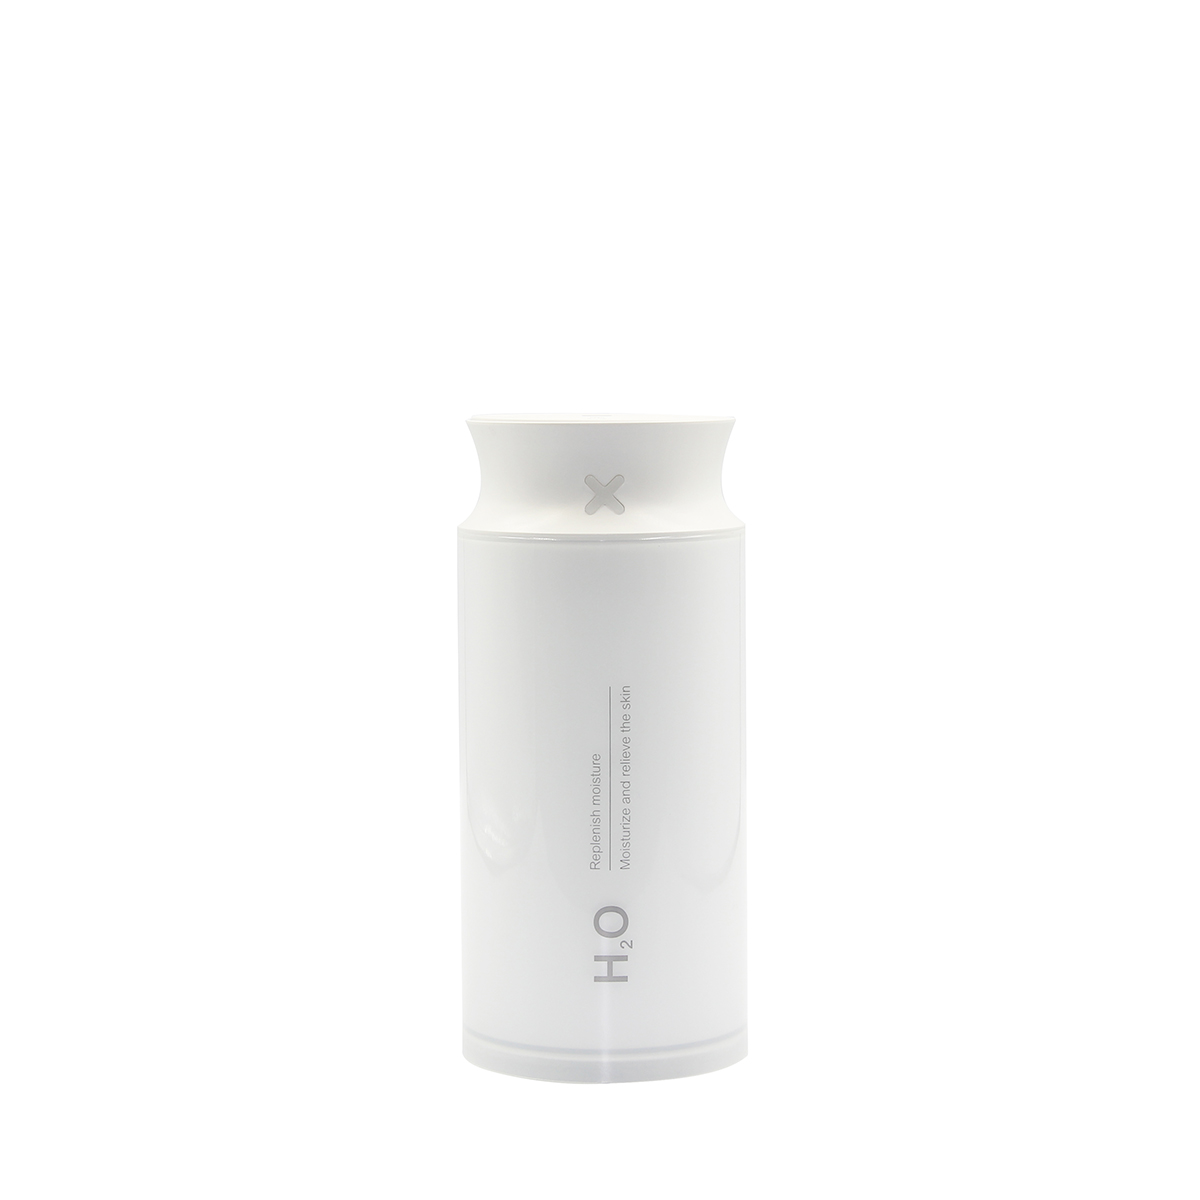 Mini HumidifierH907